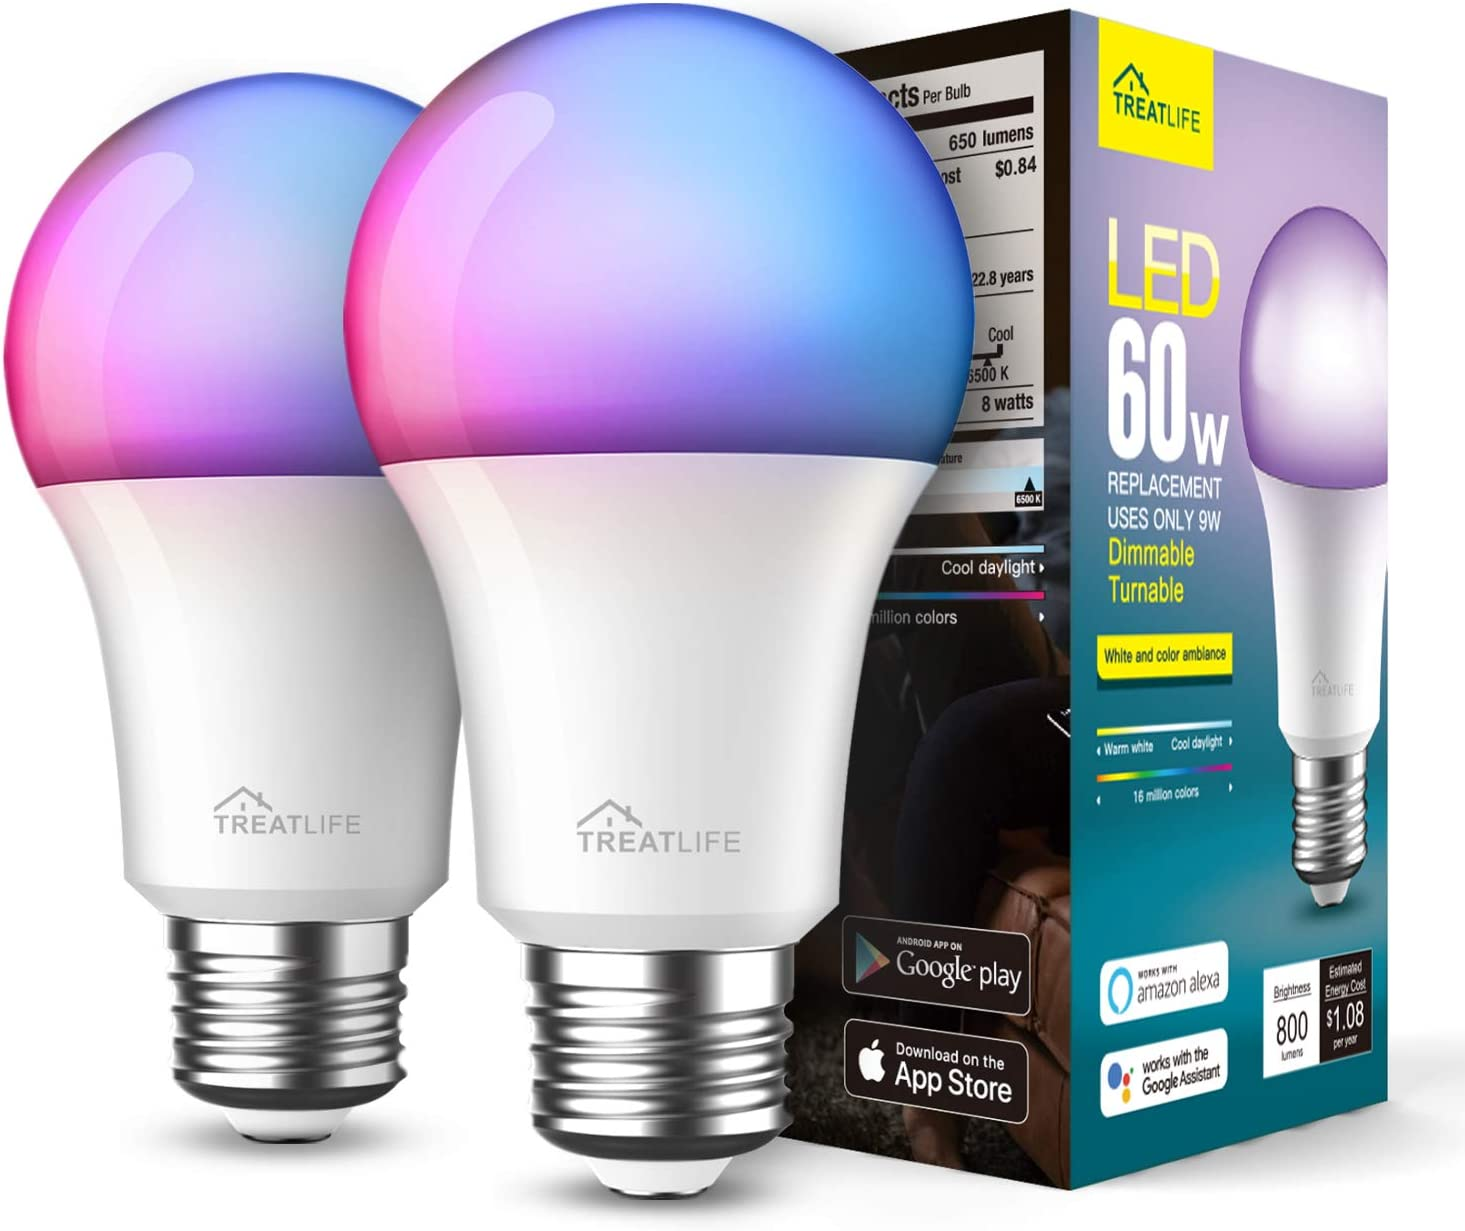 Smart Light Bulbs 2 Pack, Treatlife Music Sync Color Changing Light Bulbs, Works with Alexa, Google Assistant, A19 E26 9W 800 Lumen LED Dimmable Smart Bulb, for Party Decoration, Smart Home Lighting